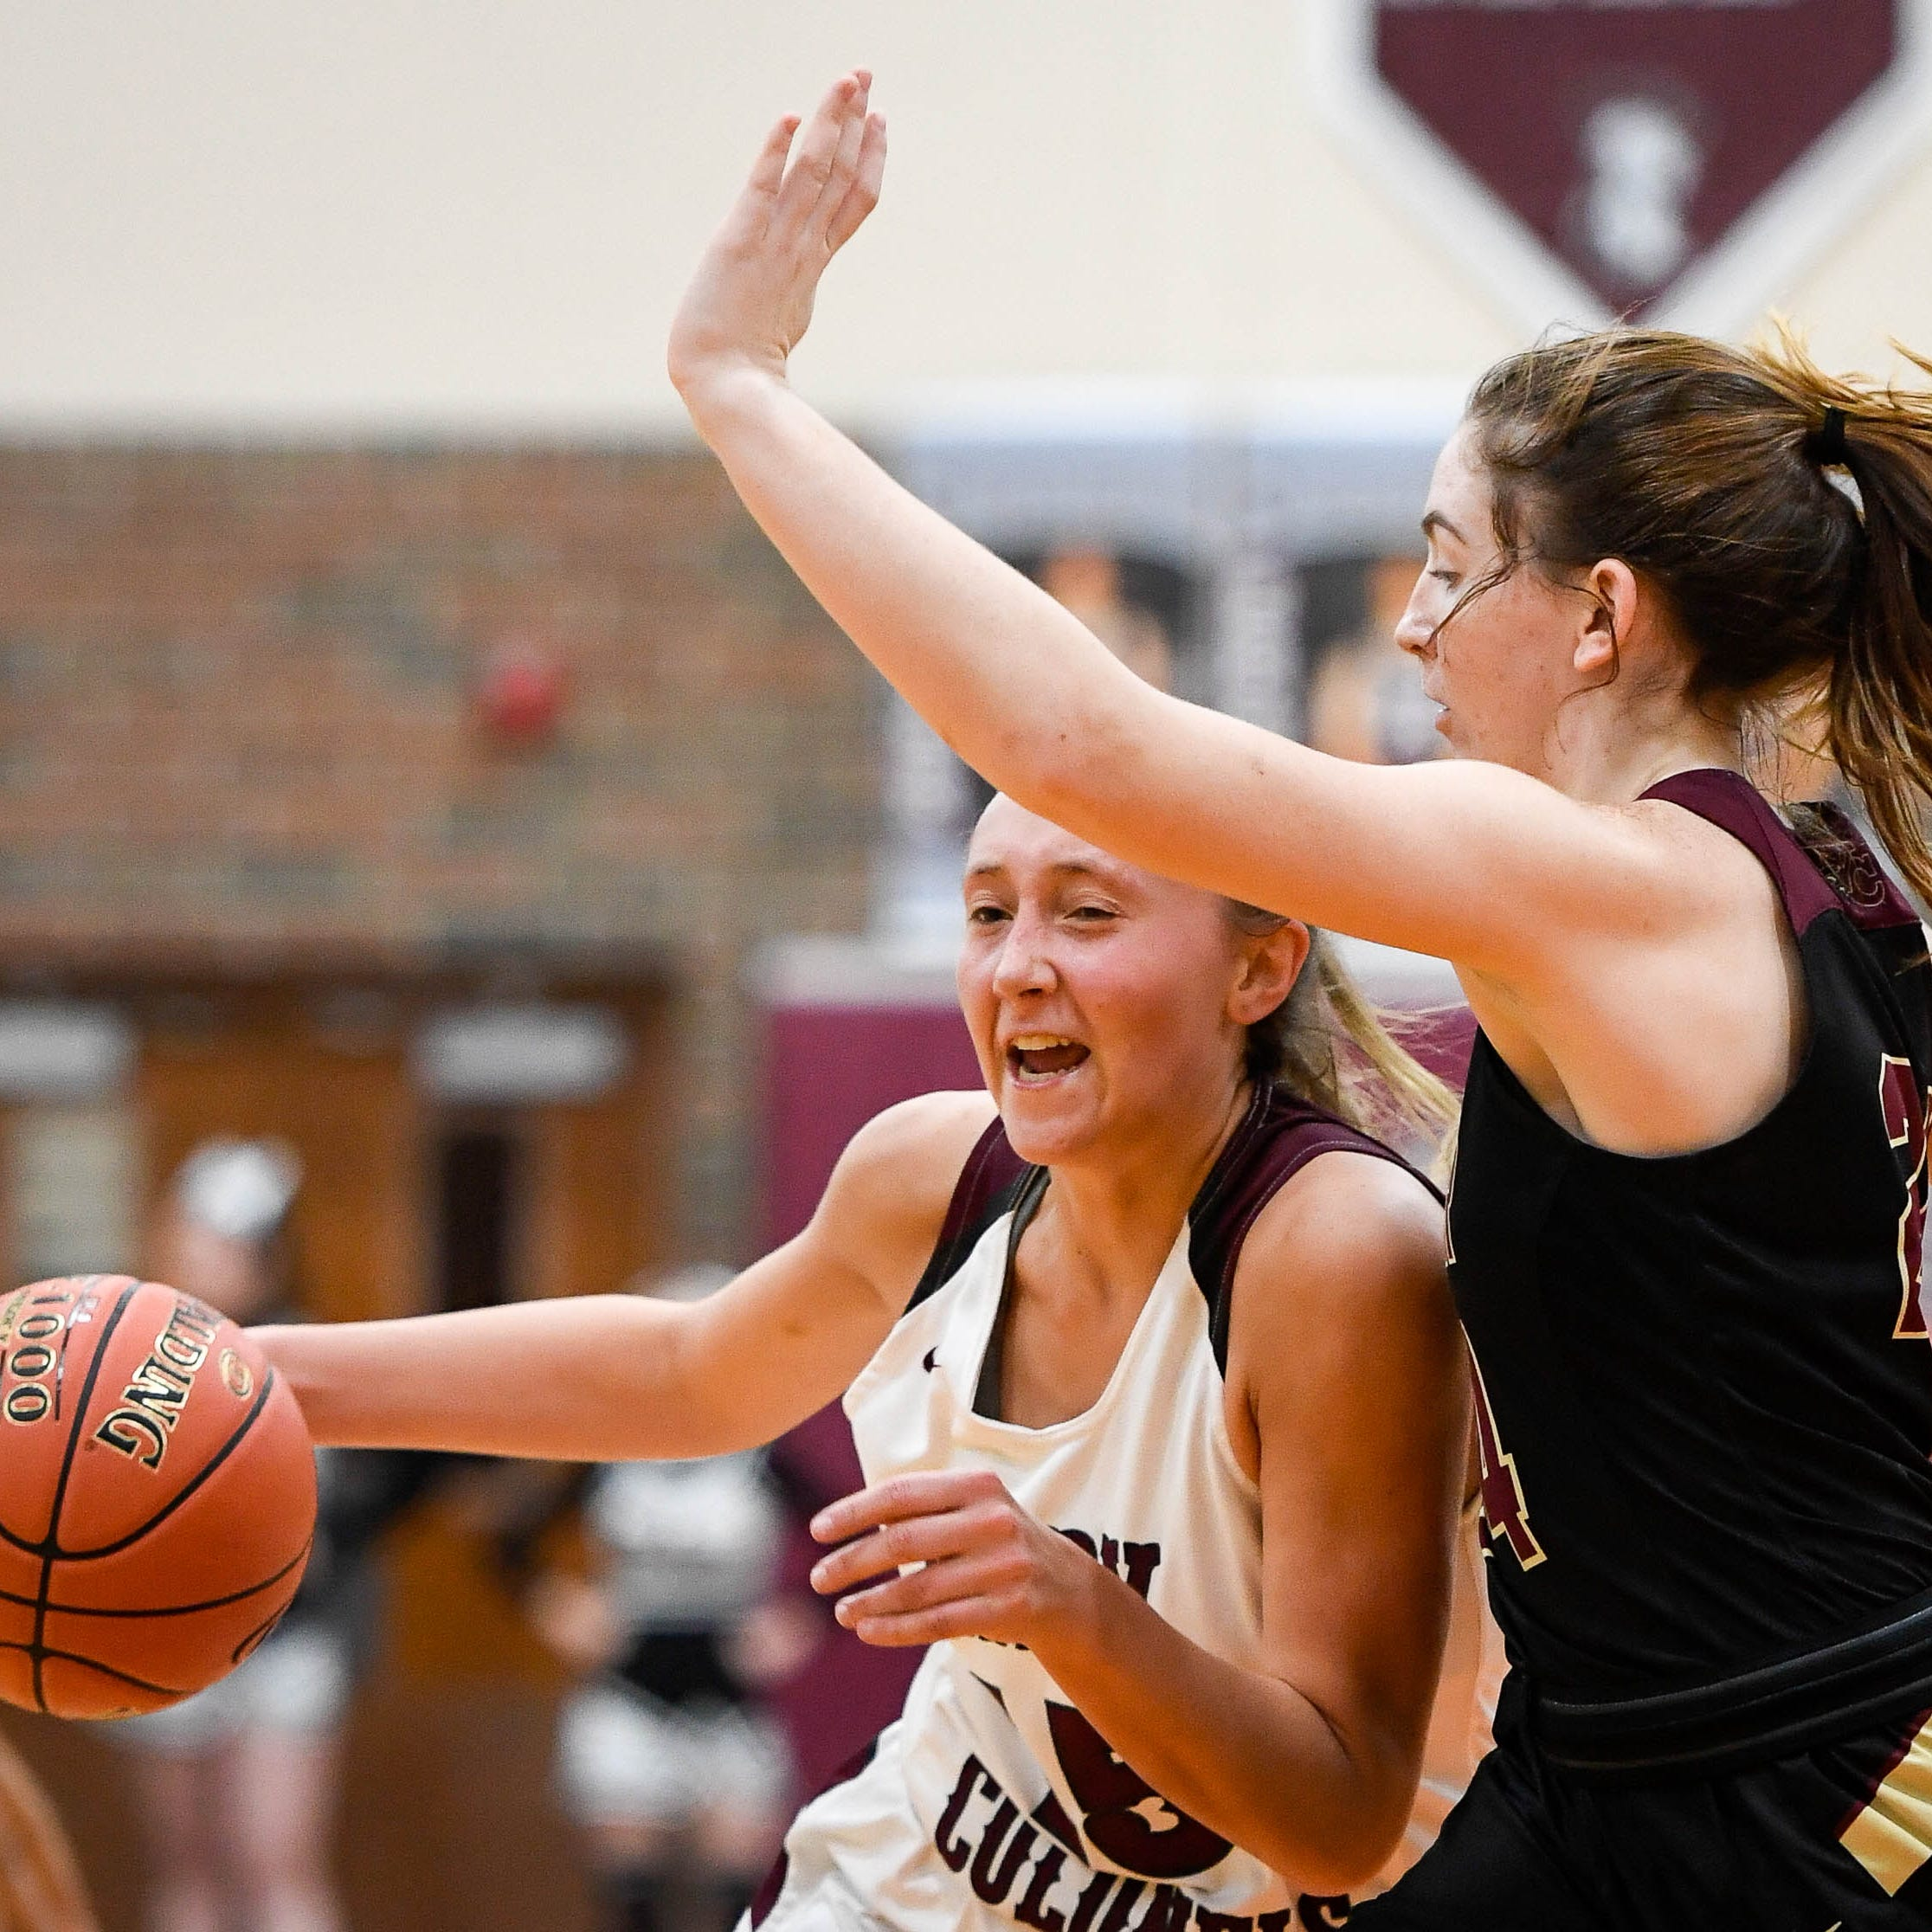 Sadie Wurth comes off bench to give Webster fourth-quarter spark in win at Henderson